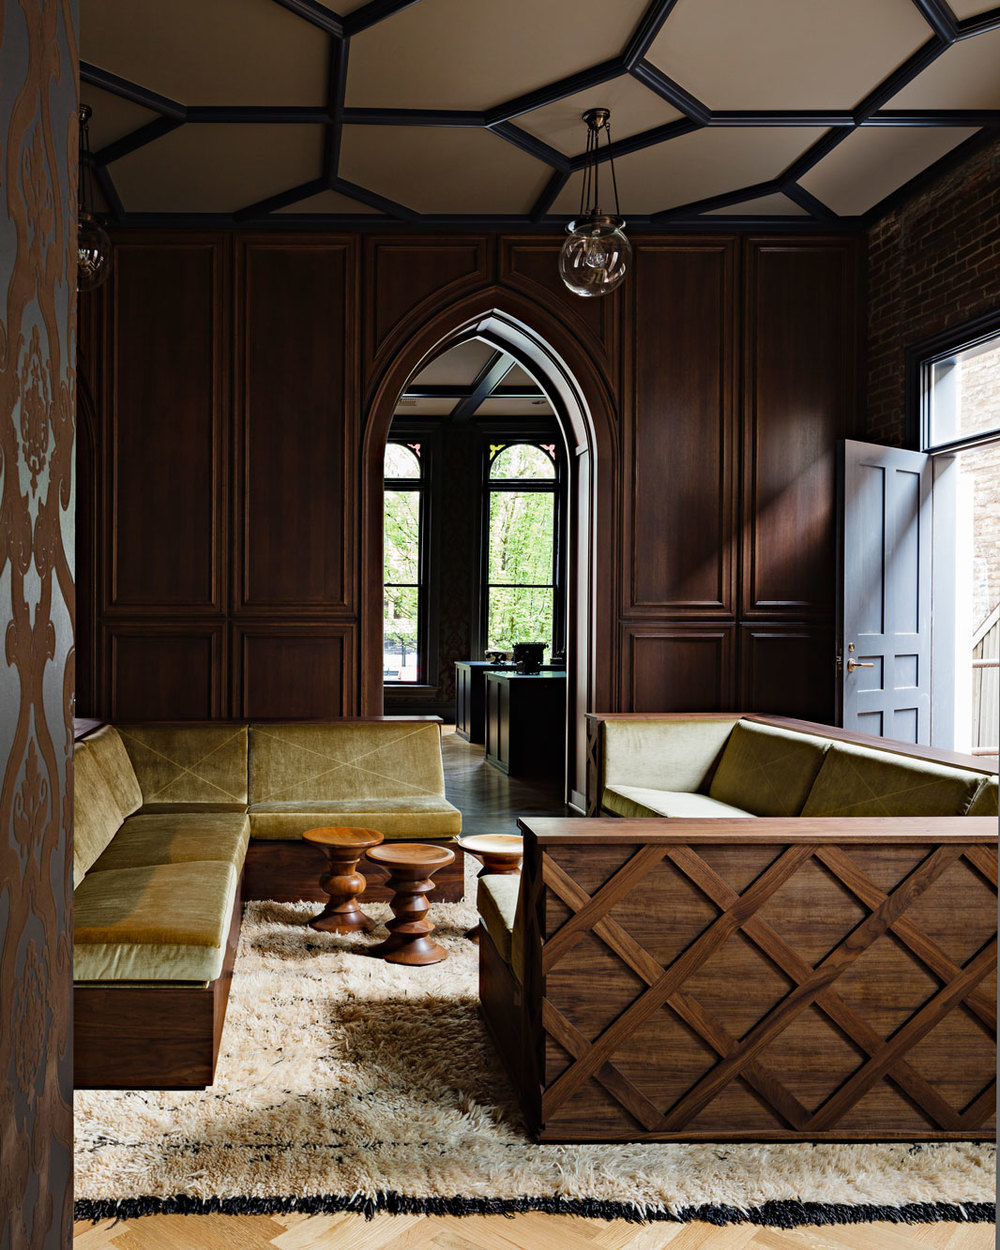 Our very own Bishop House, thanks to Jessica Helgerson Interior Design, captured by photographer Lincoln Barbrour.